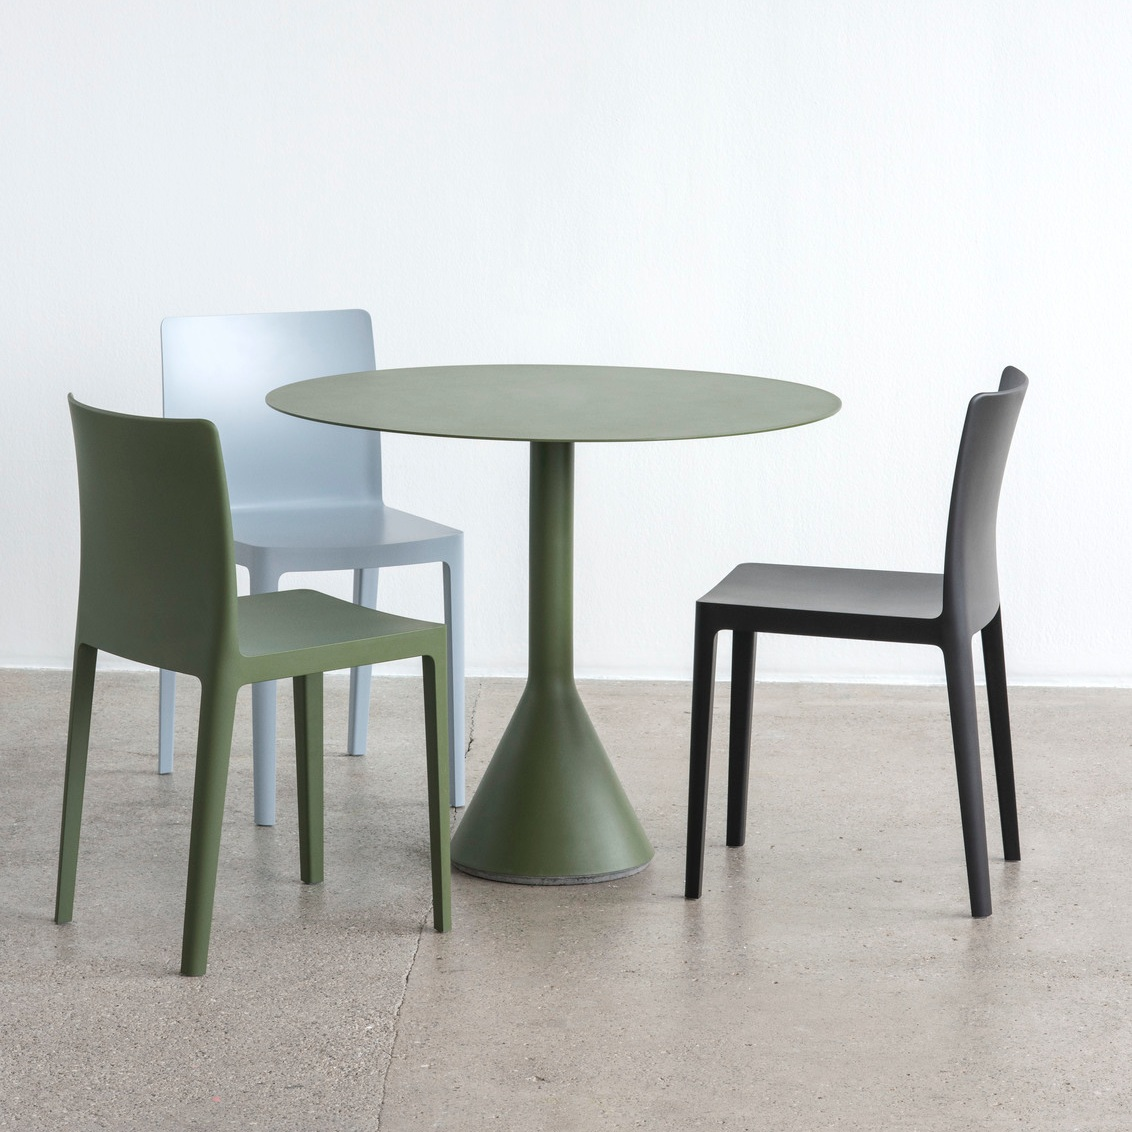 Elementaire+Chair+antracite+olive+blue+grey_Palissade+Cone+Table+olive.jpg